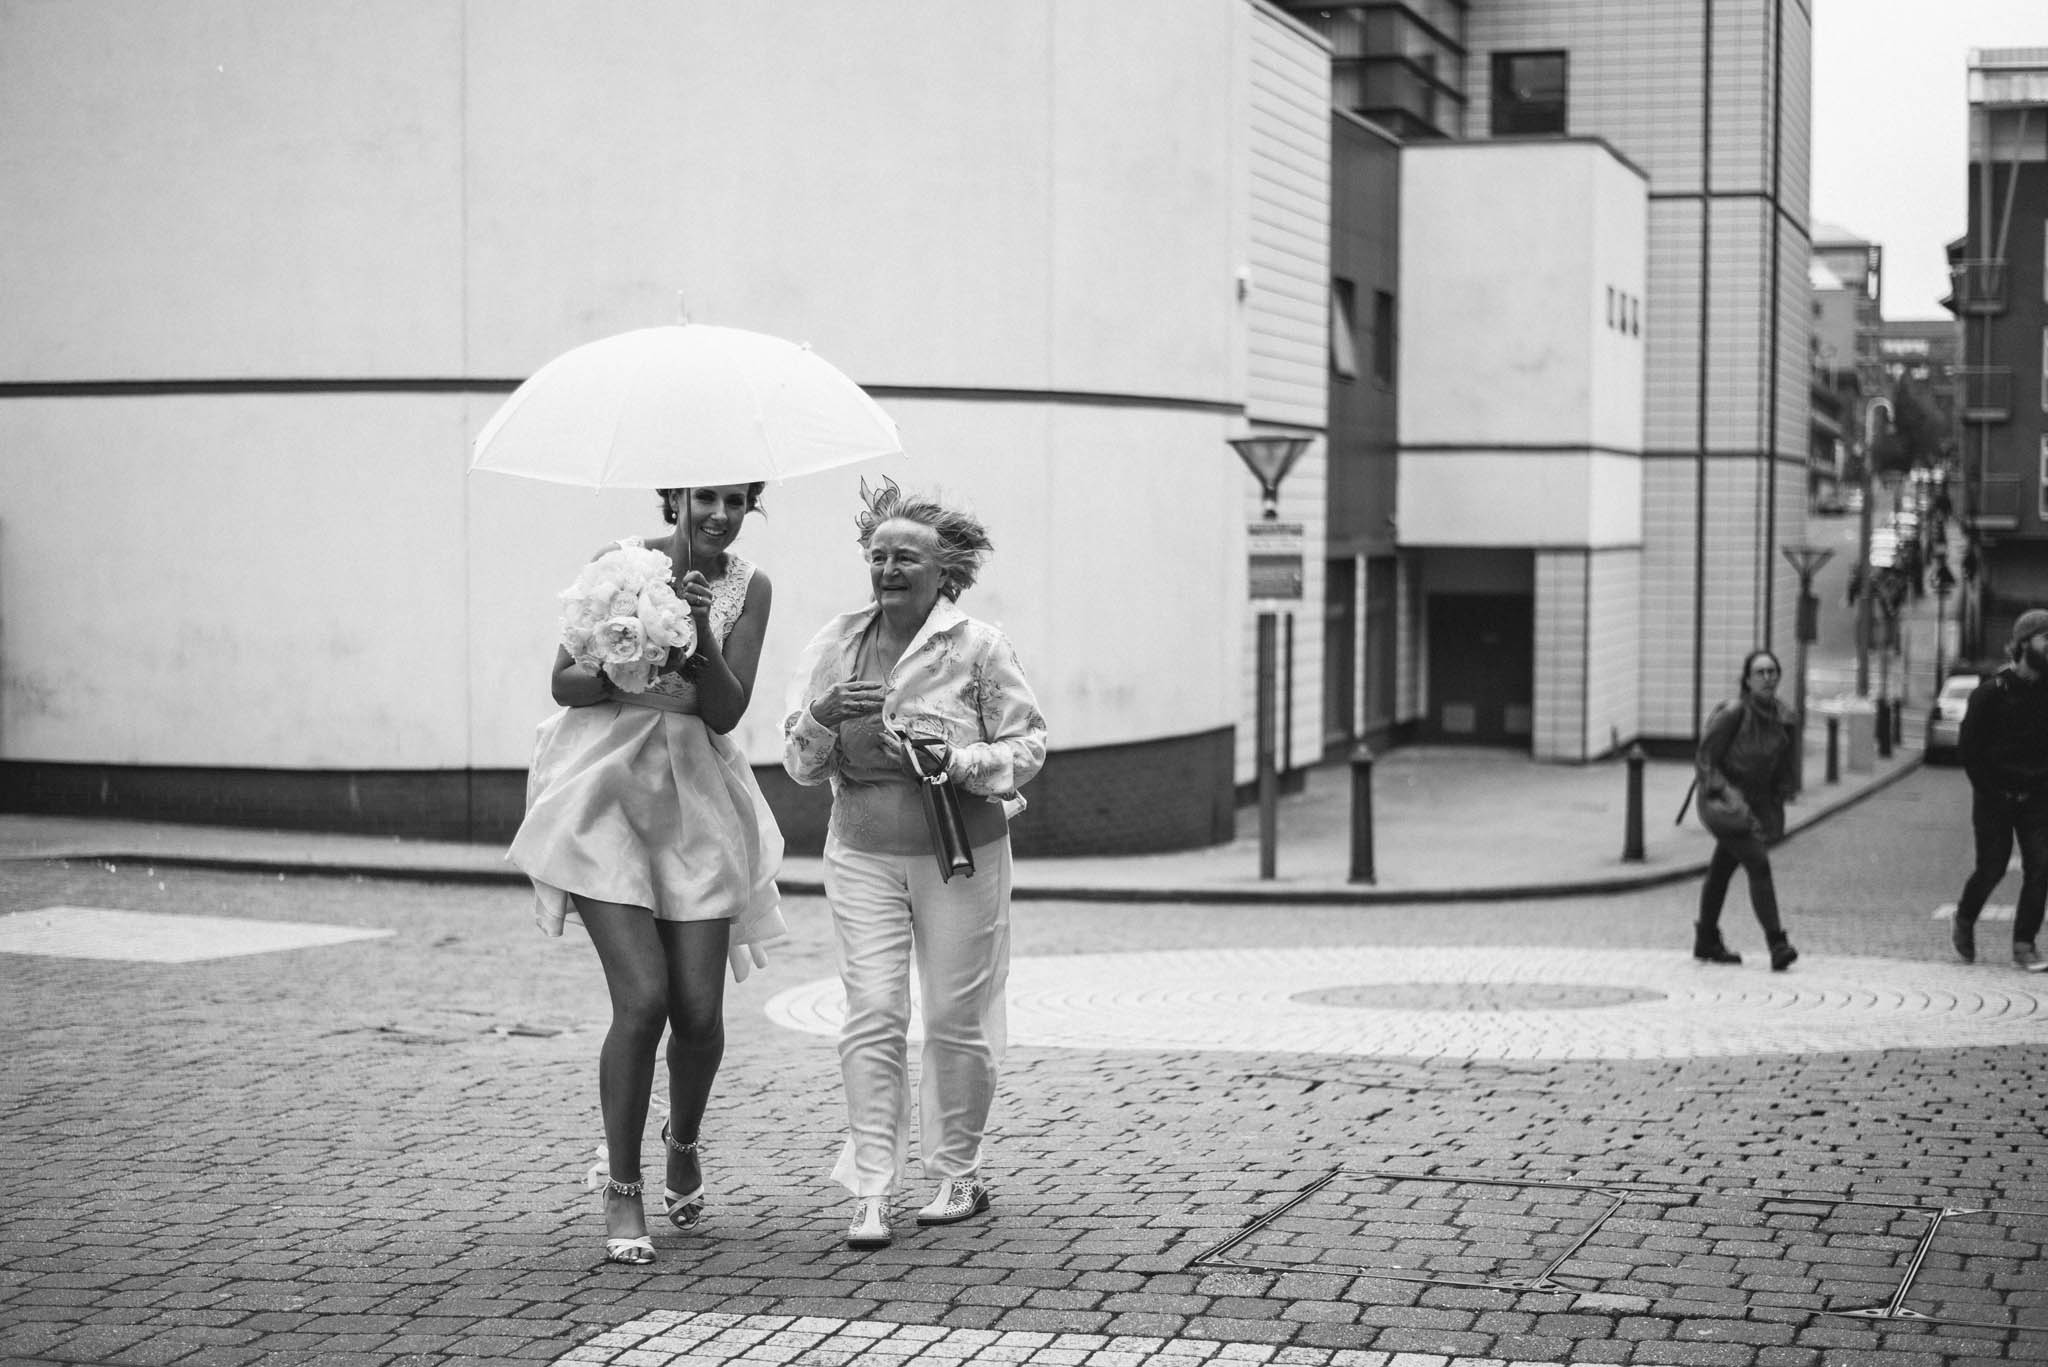 umbrella-wedding-blog-scott-stockwell-photography-end-2017.jpg